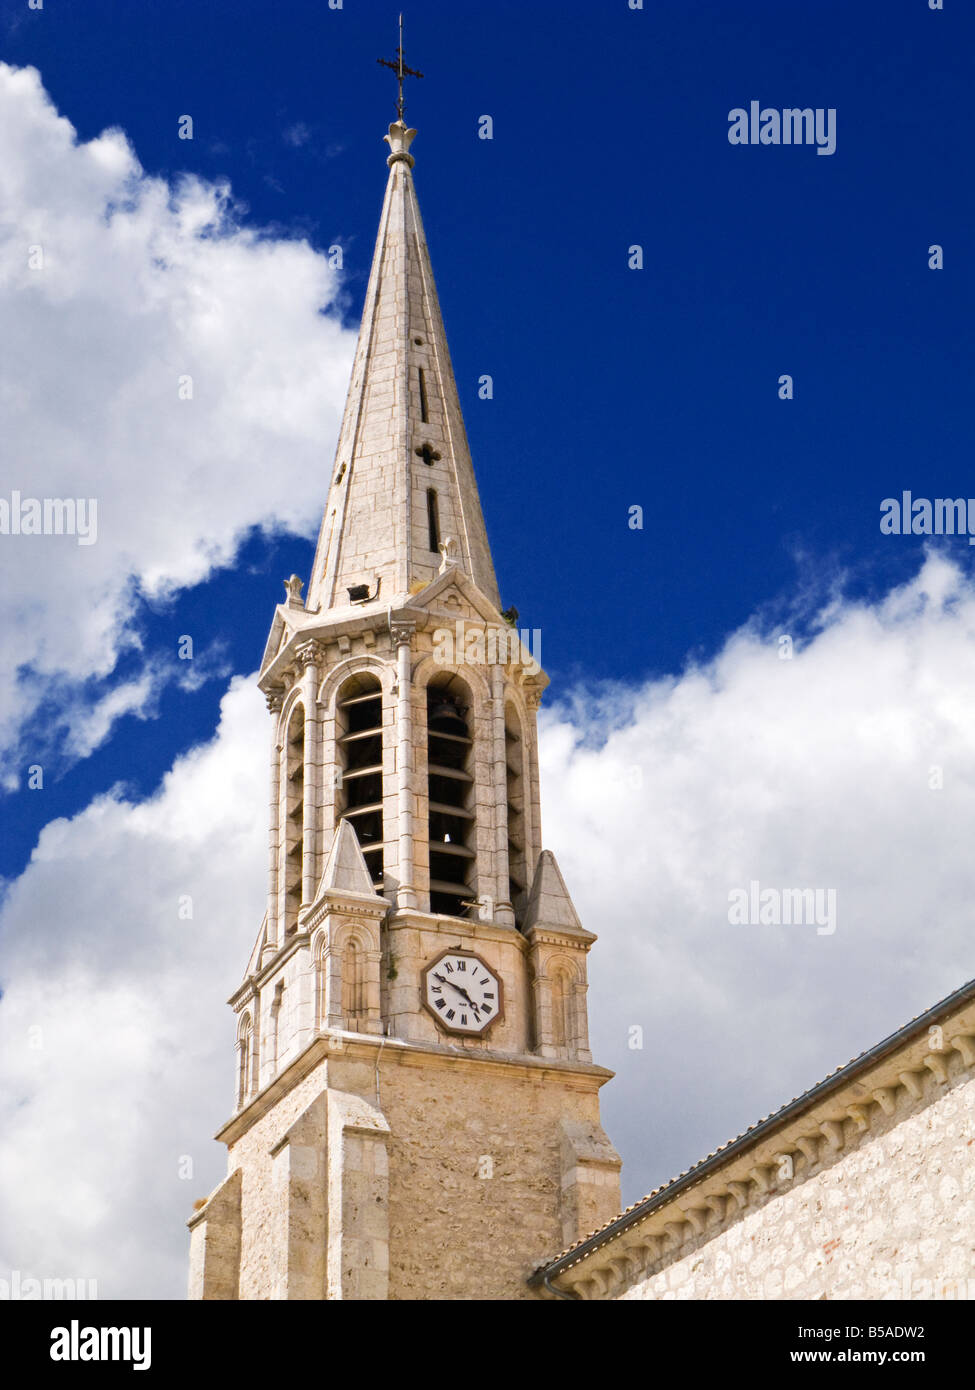 Church steeple bell tower and clock france europe stock photo church steeple bell tower and clock france europe altavistaventures Images